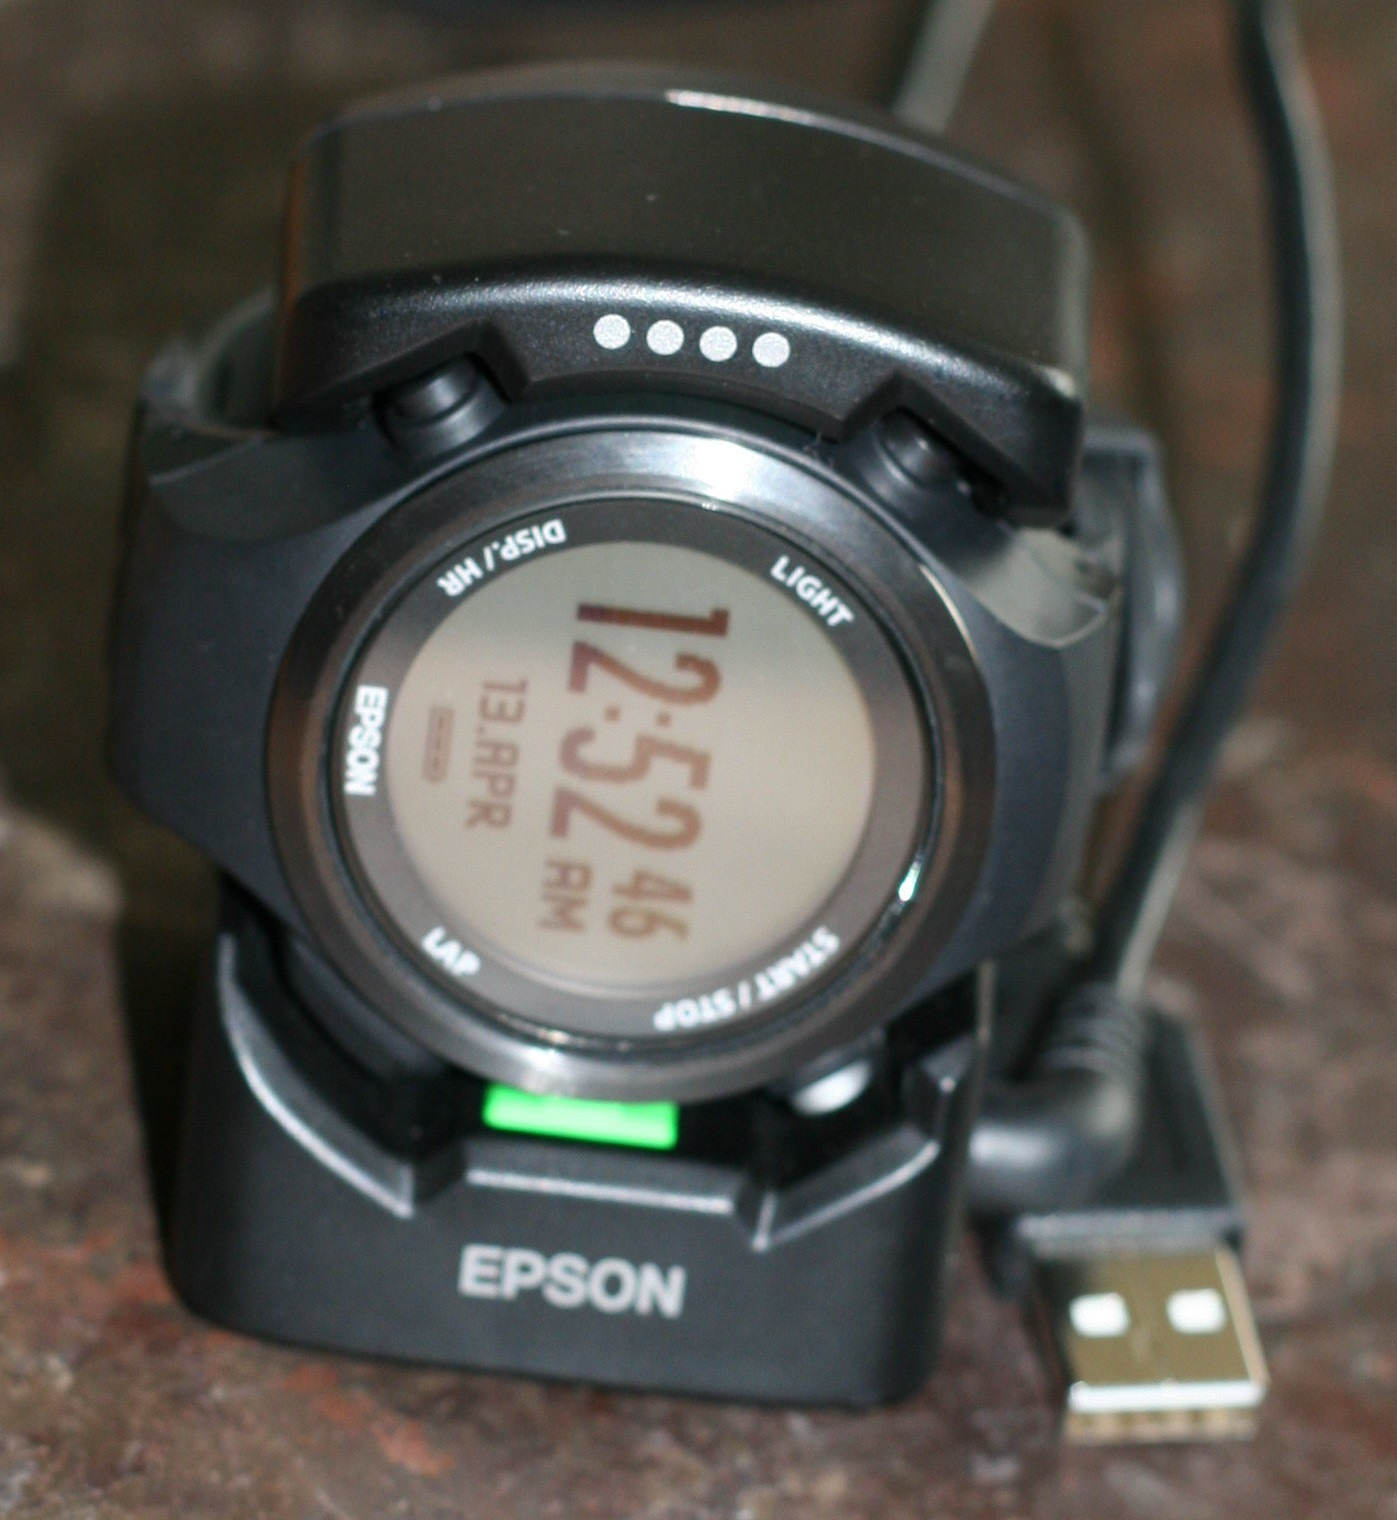 Epson SF-810 Review